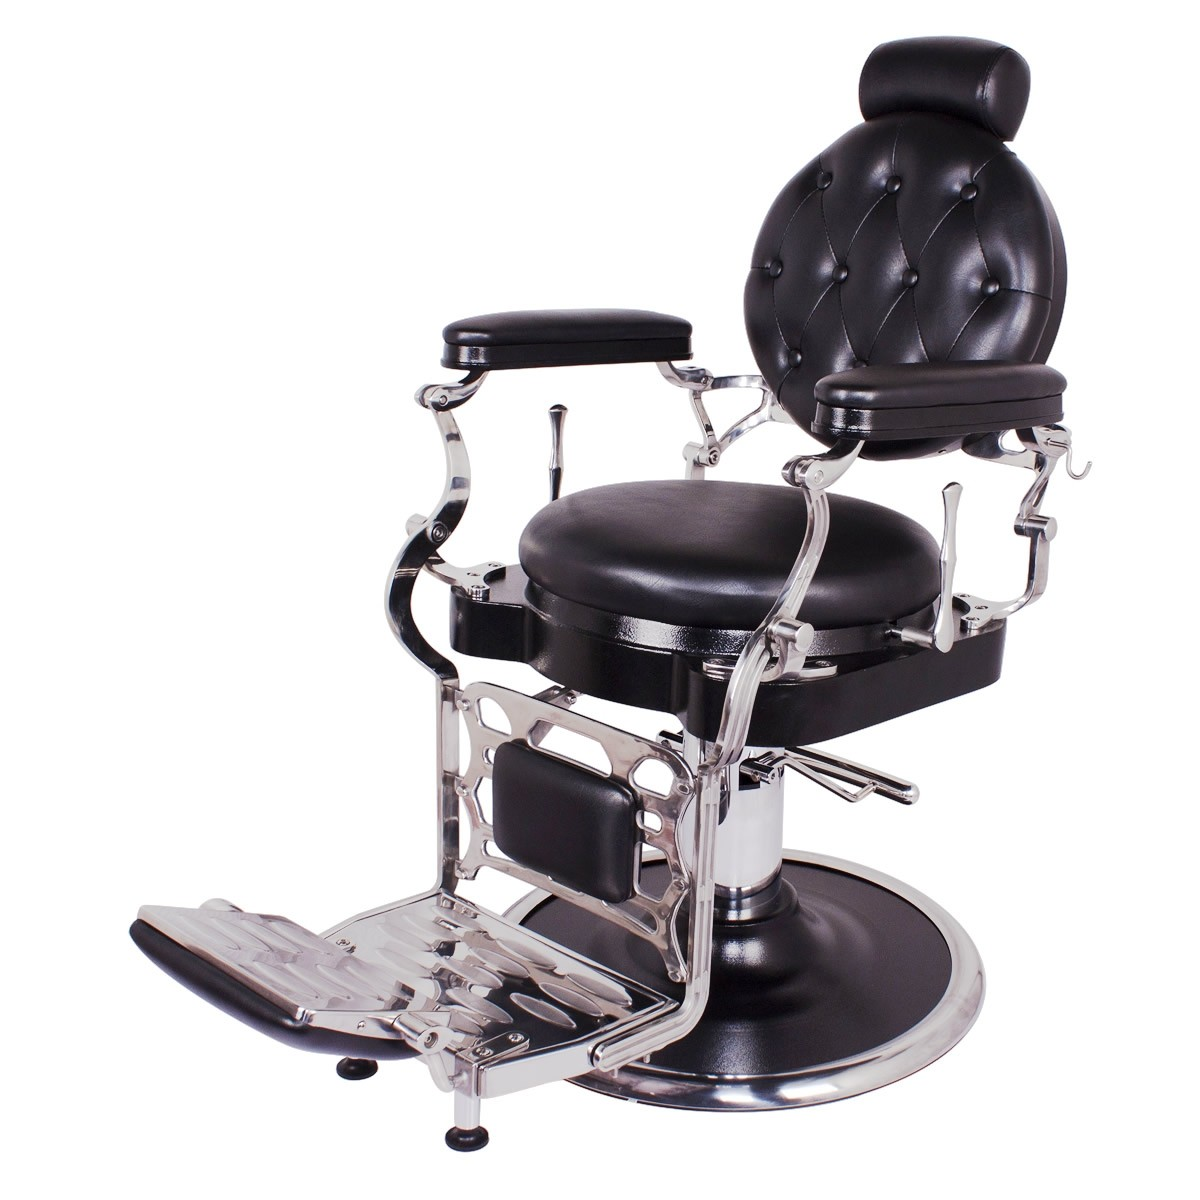 Remarkable Marcus Antique Barber Chair Pabps2019 Chair Design Images Pabps2019Com